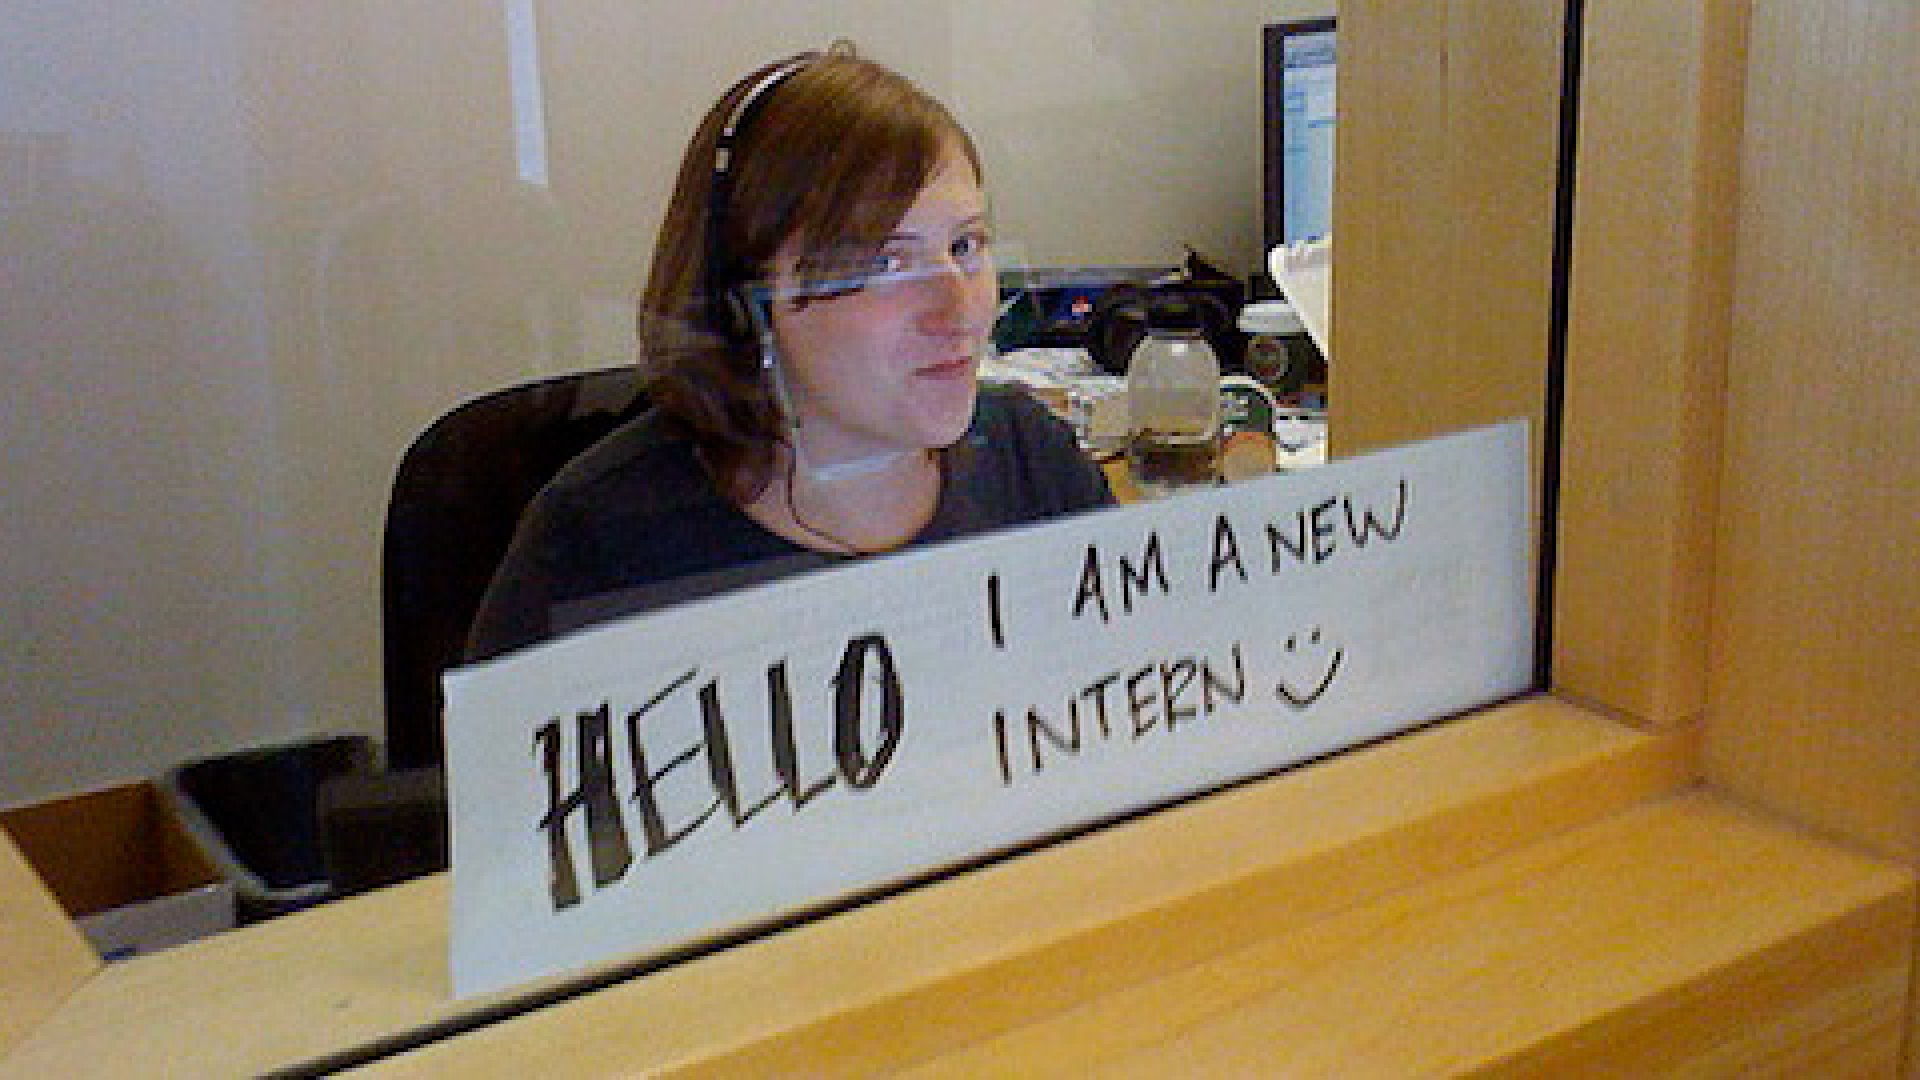 Turn Your Interns Into Killer Employees